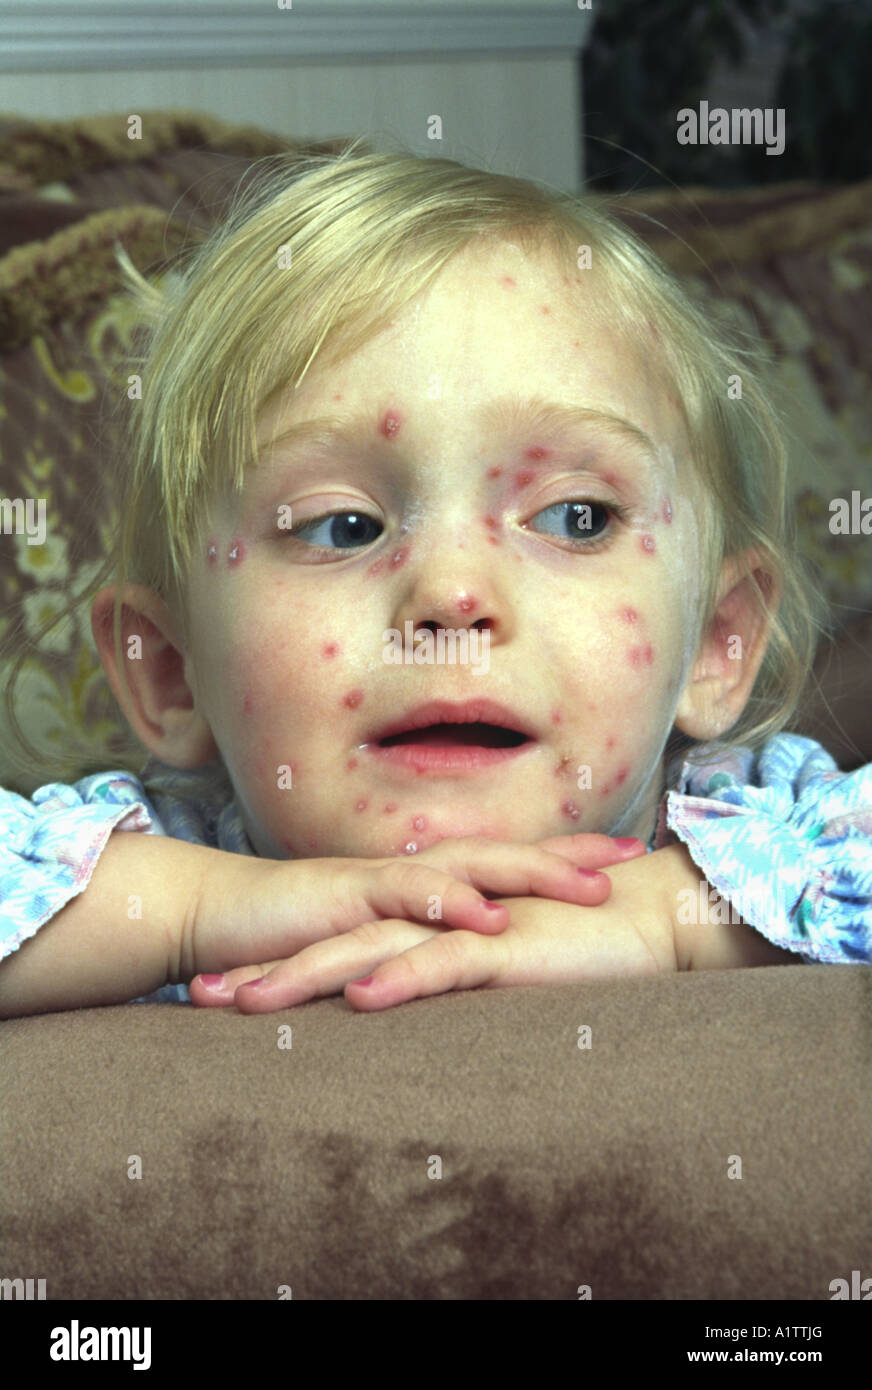 Young female child suffering with Chickenpox - Stock Image